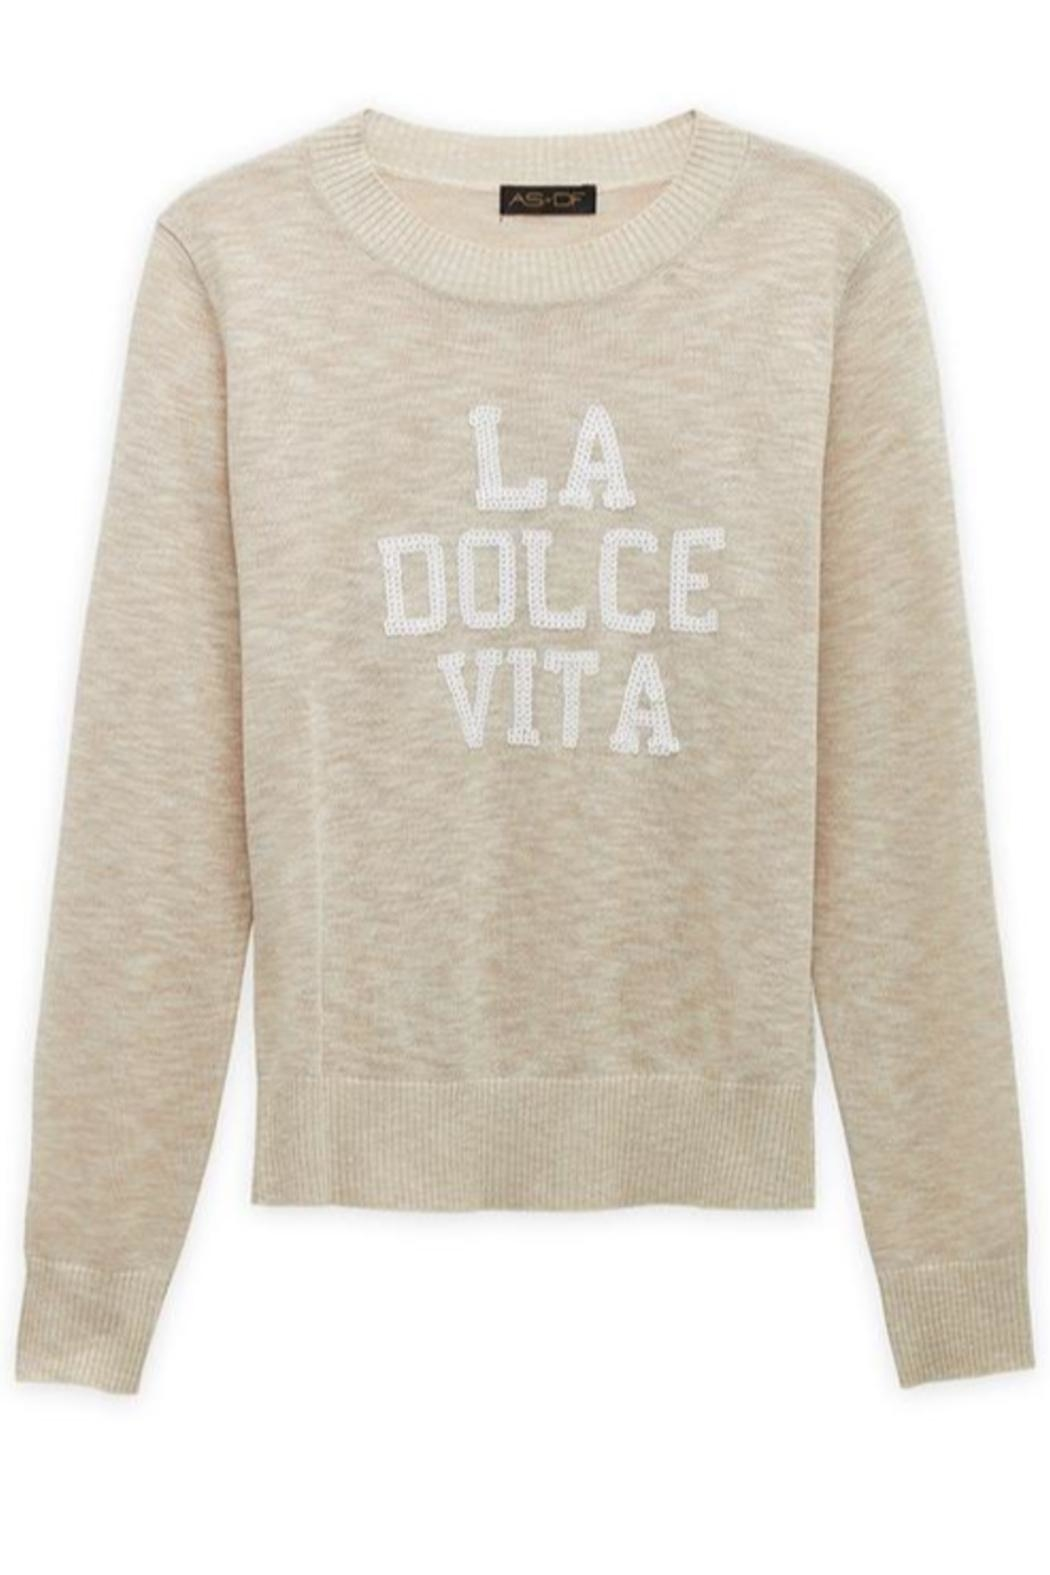 AS by DF La-Dolce-Vita Sweater - Side Cropped Image